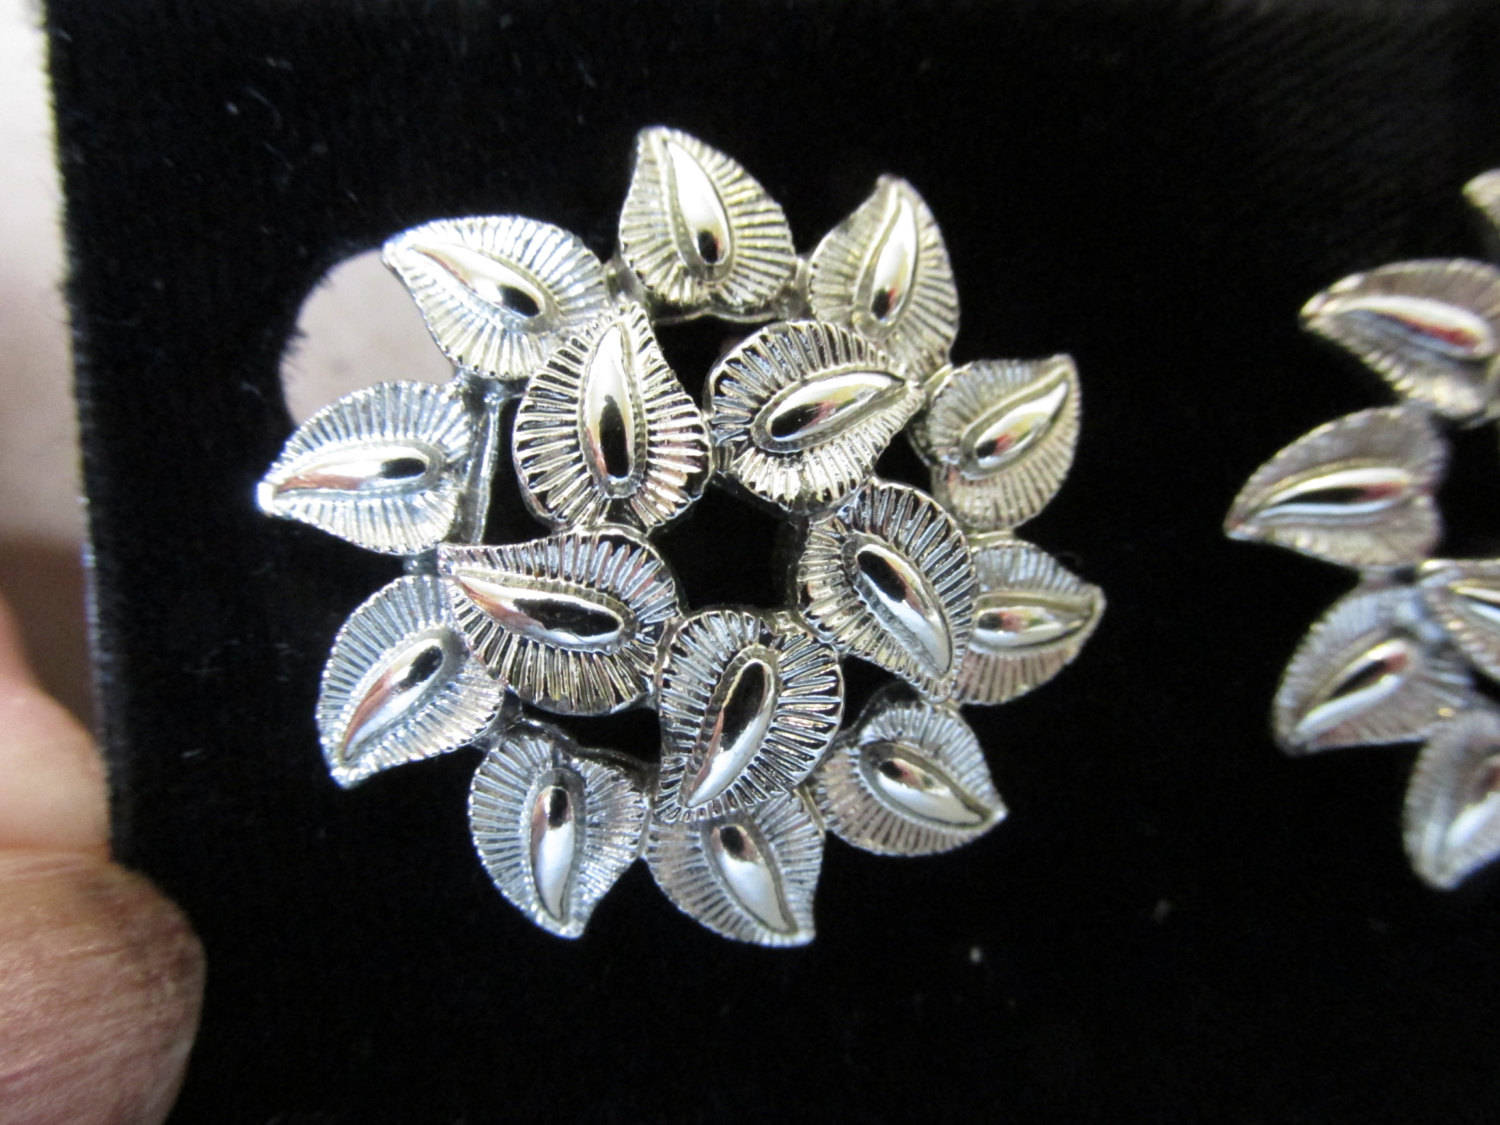 How to Choose a Good Reliable Silver Supplier and Save Money